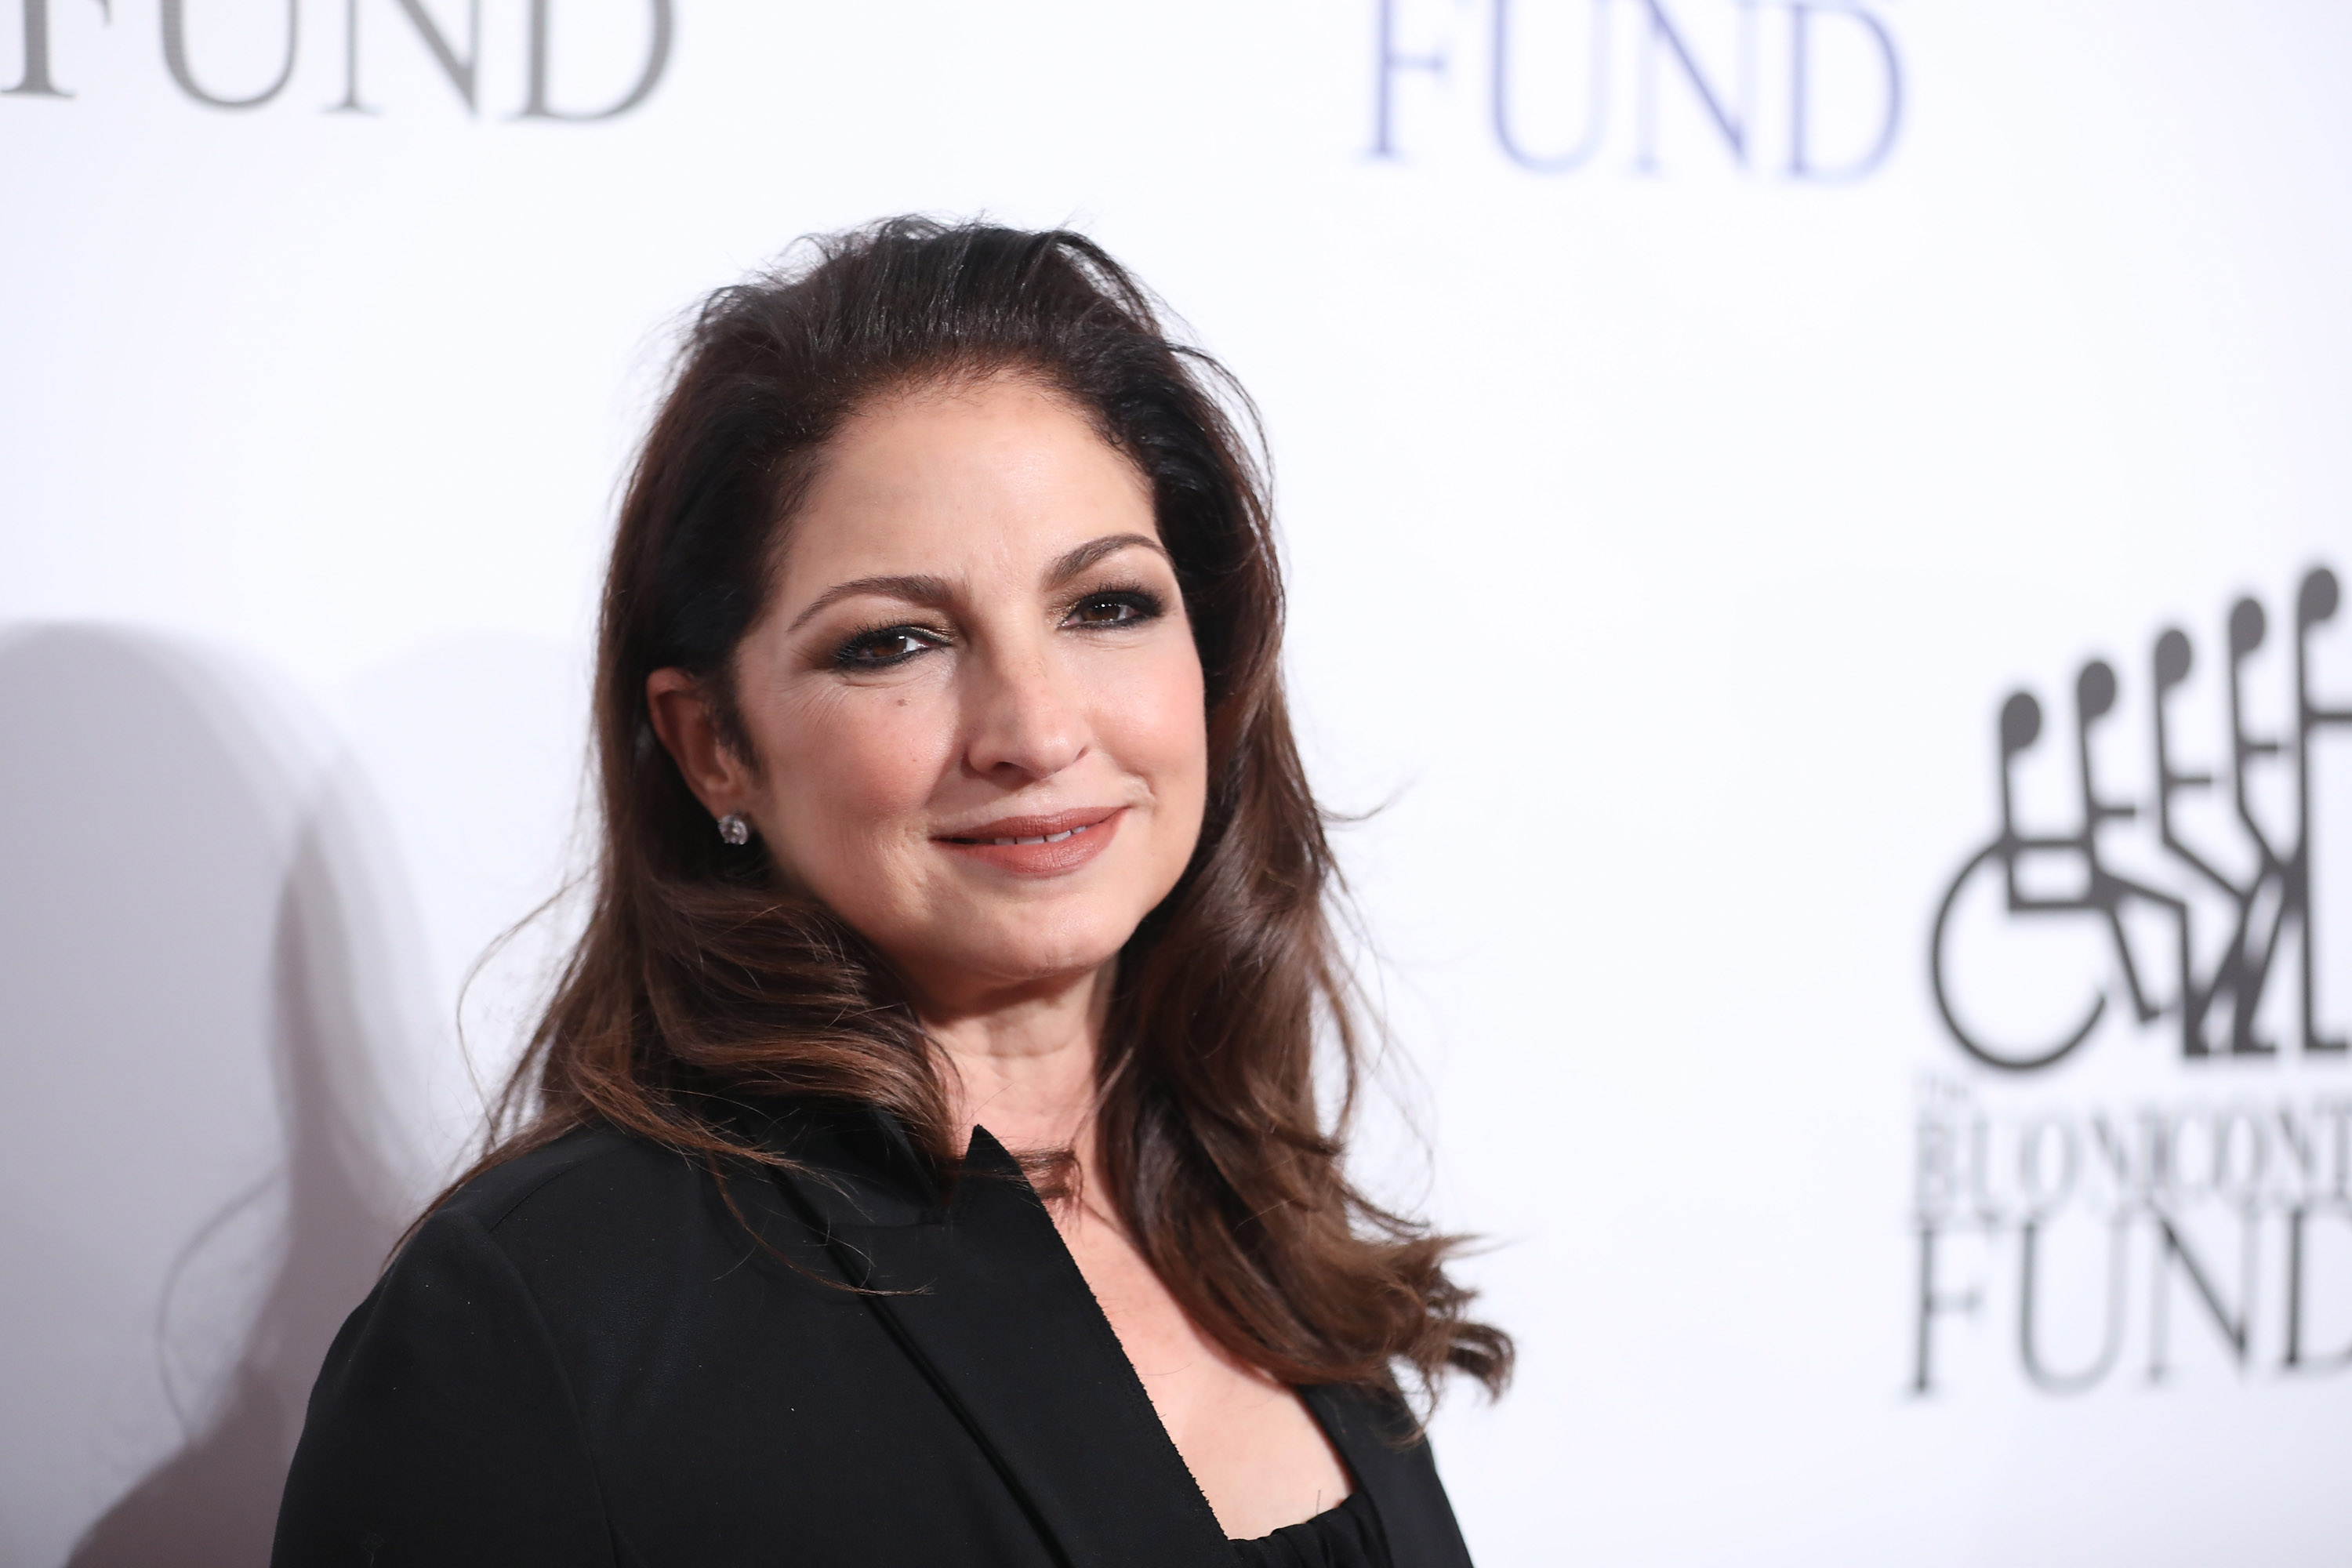 Gloria Estefan to Play Rita Moreno's Arch-Nemesis on Netflix's 'One Day at a Time'